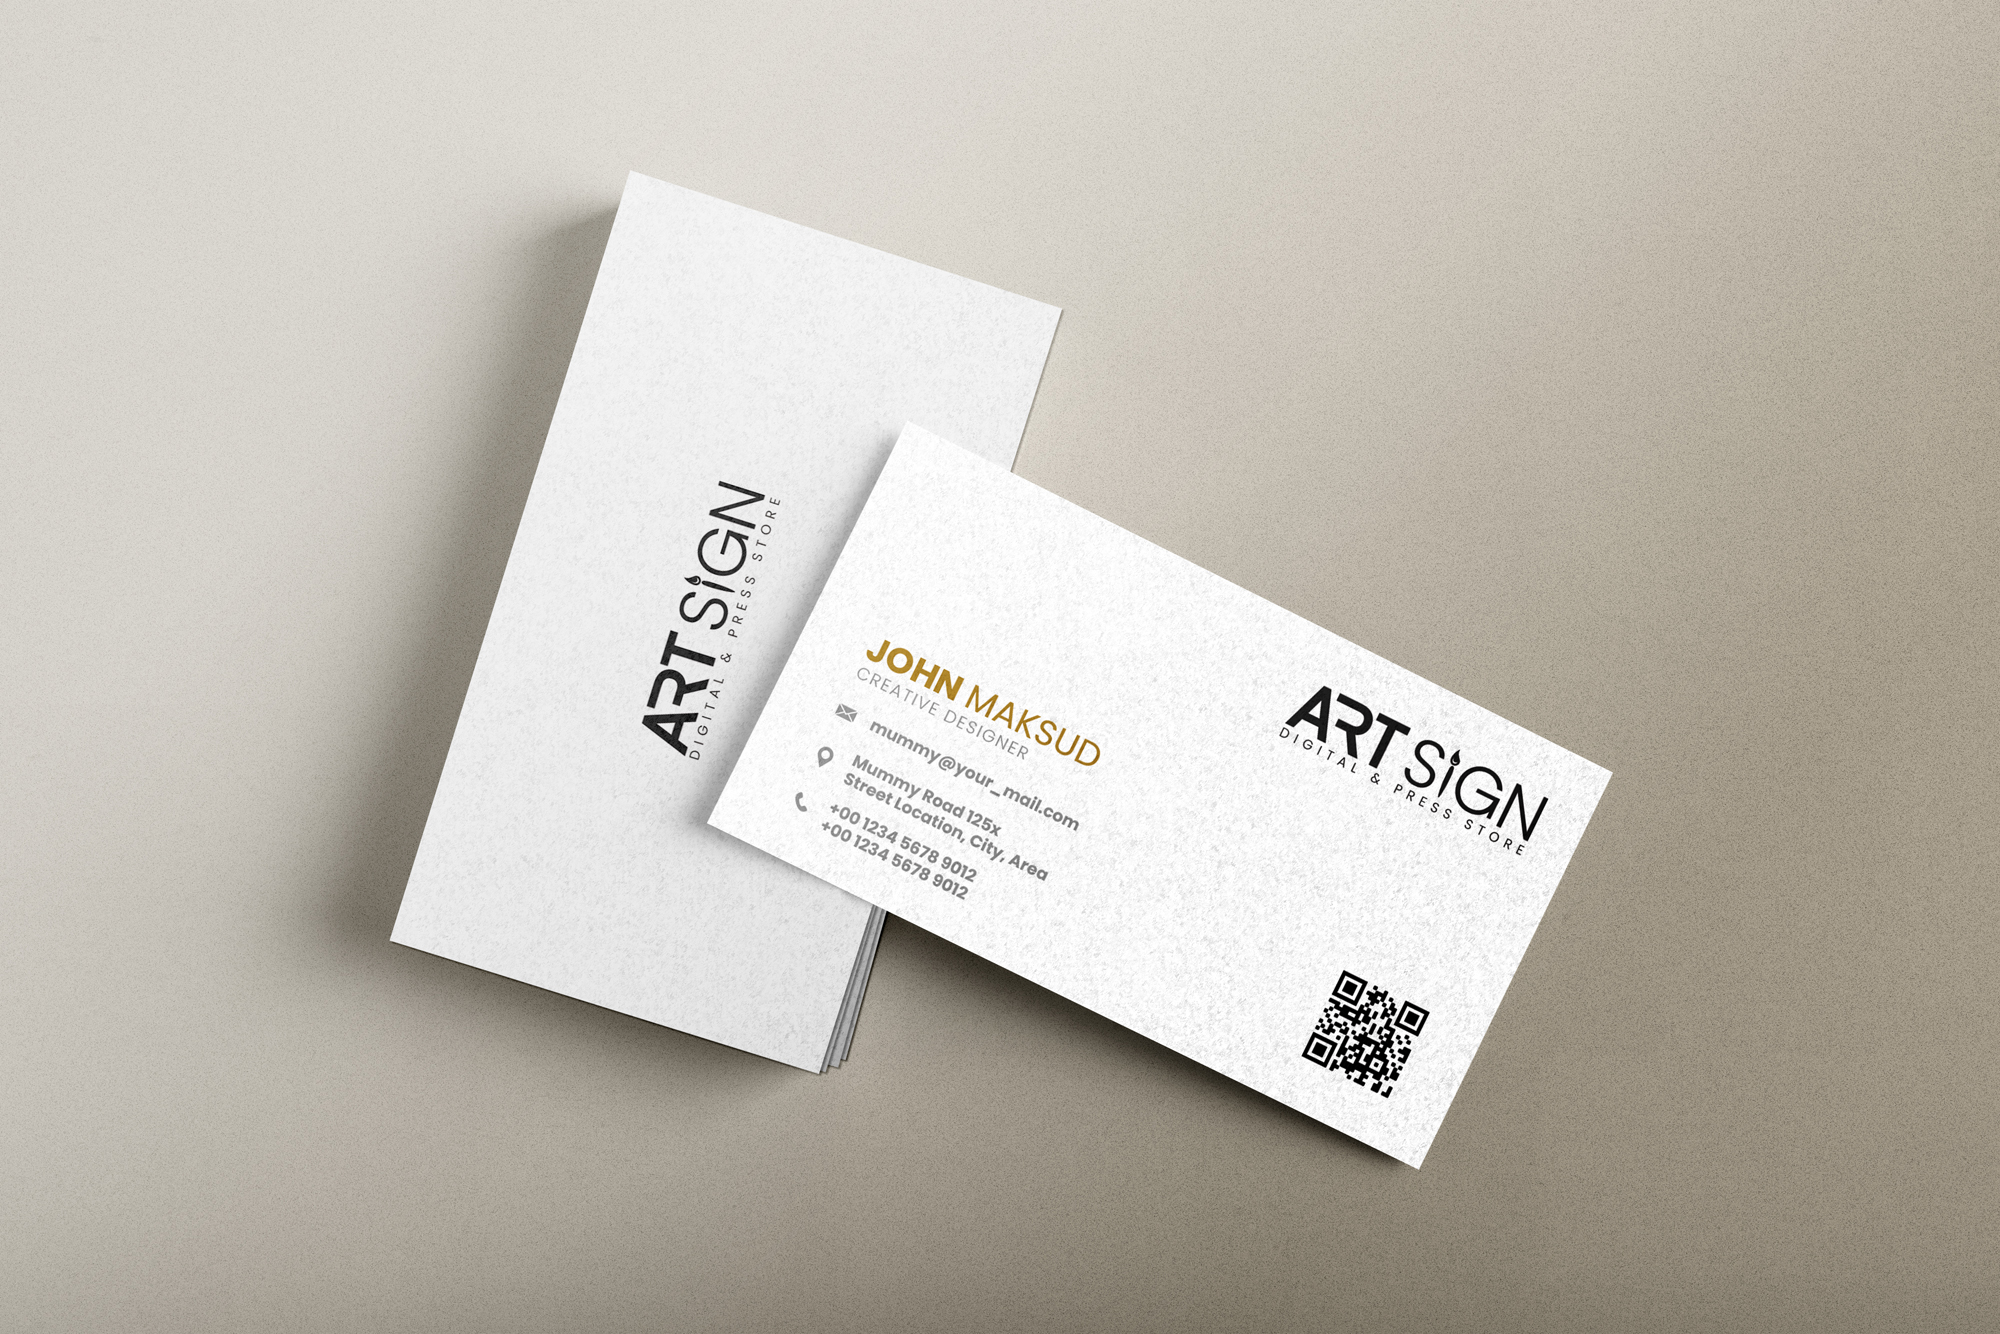 I will design minimalist and modern business card for your business in 24 hours